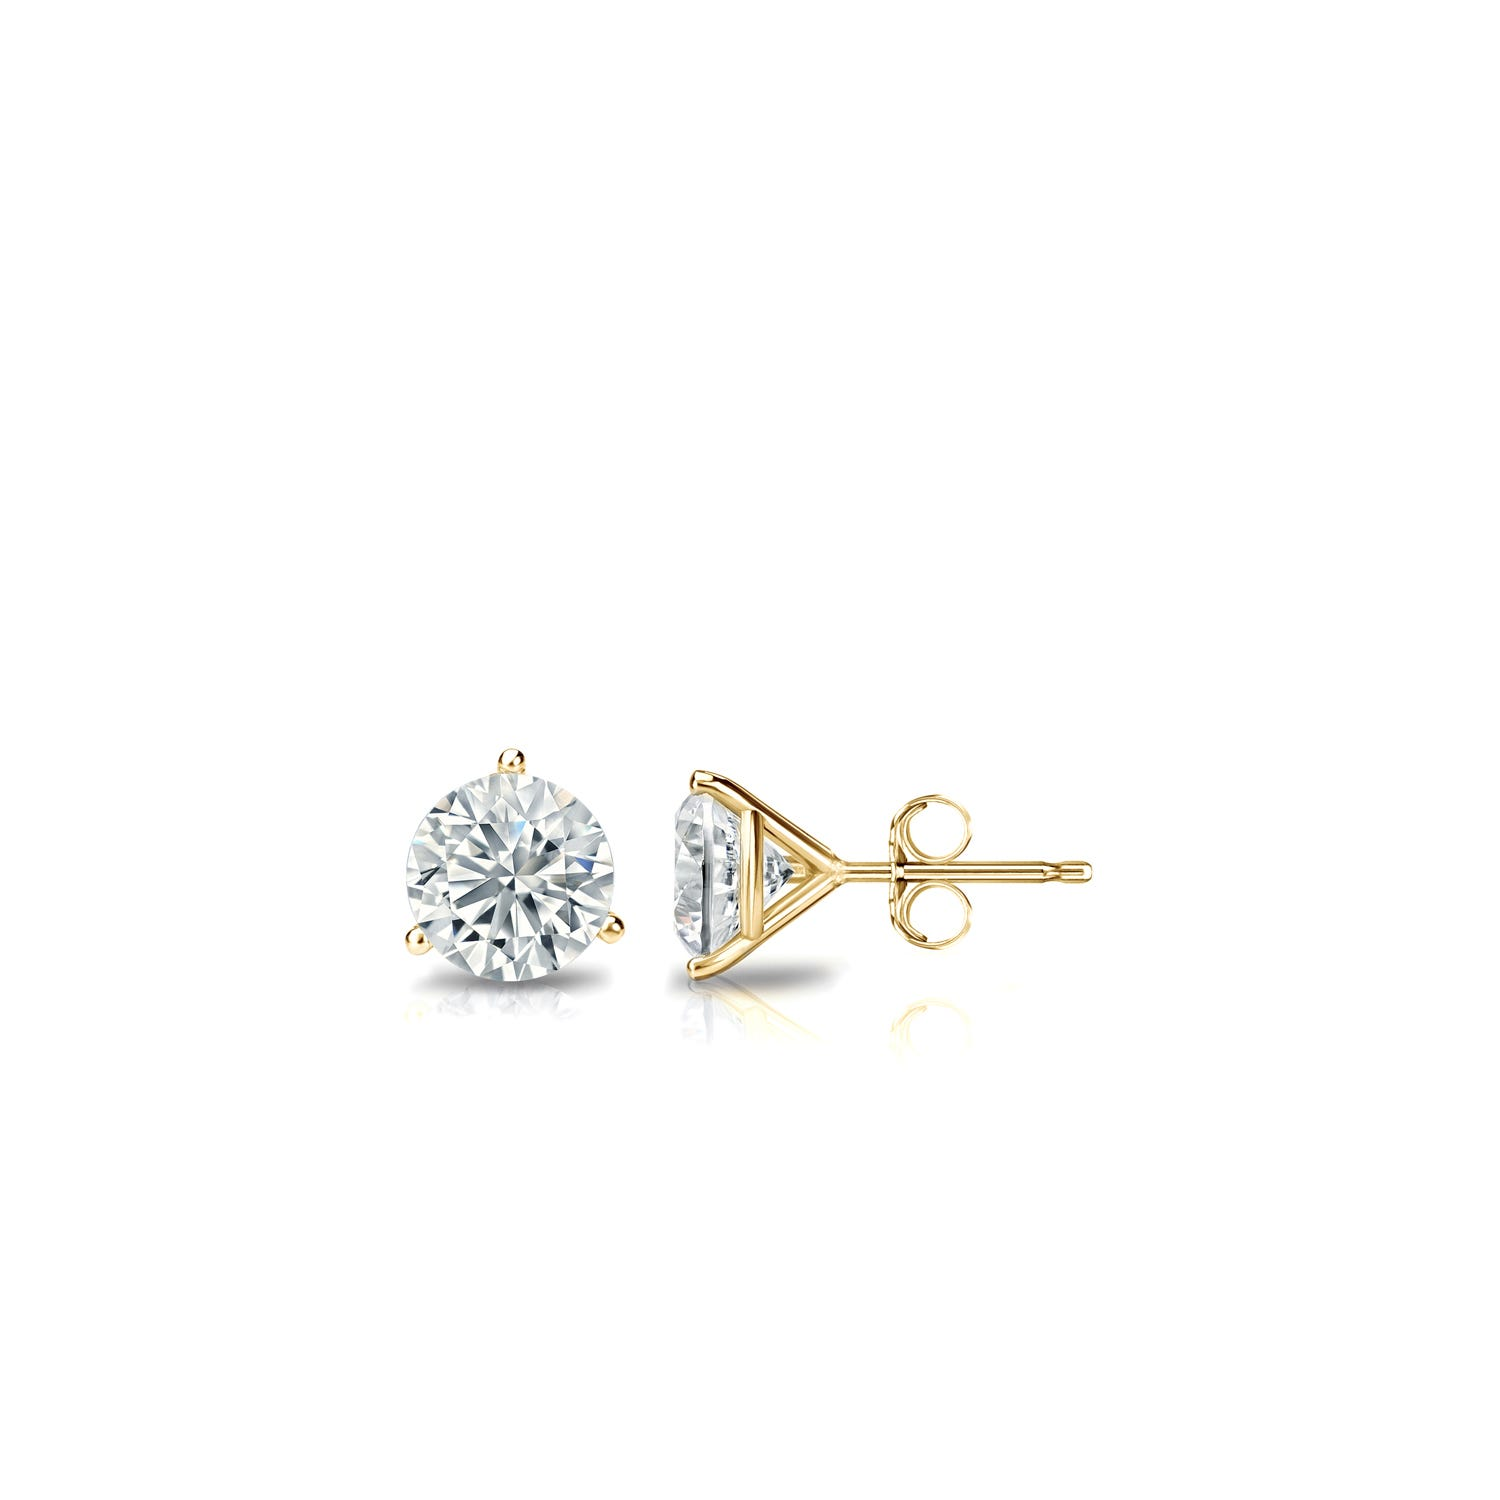 1/6 CTTW Round Diamond Solitaire Stud Earrings IJ I2 in 10K Yellow Gold 3-Prong Setting